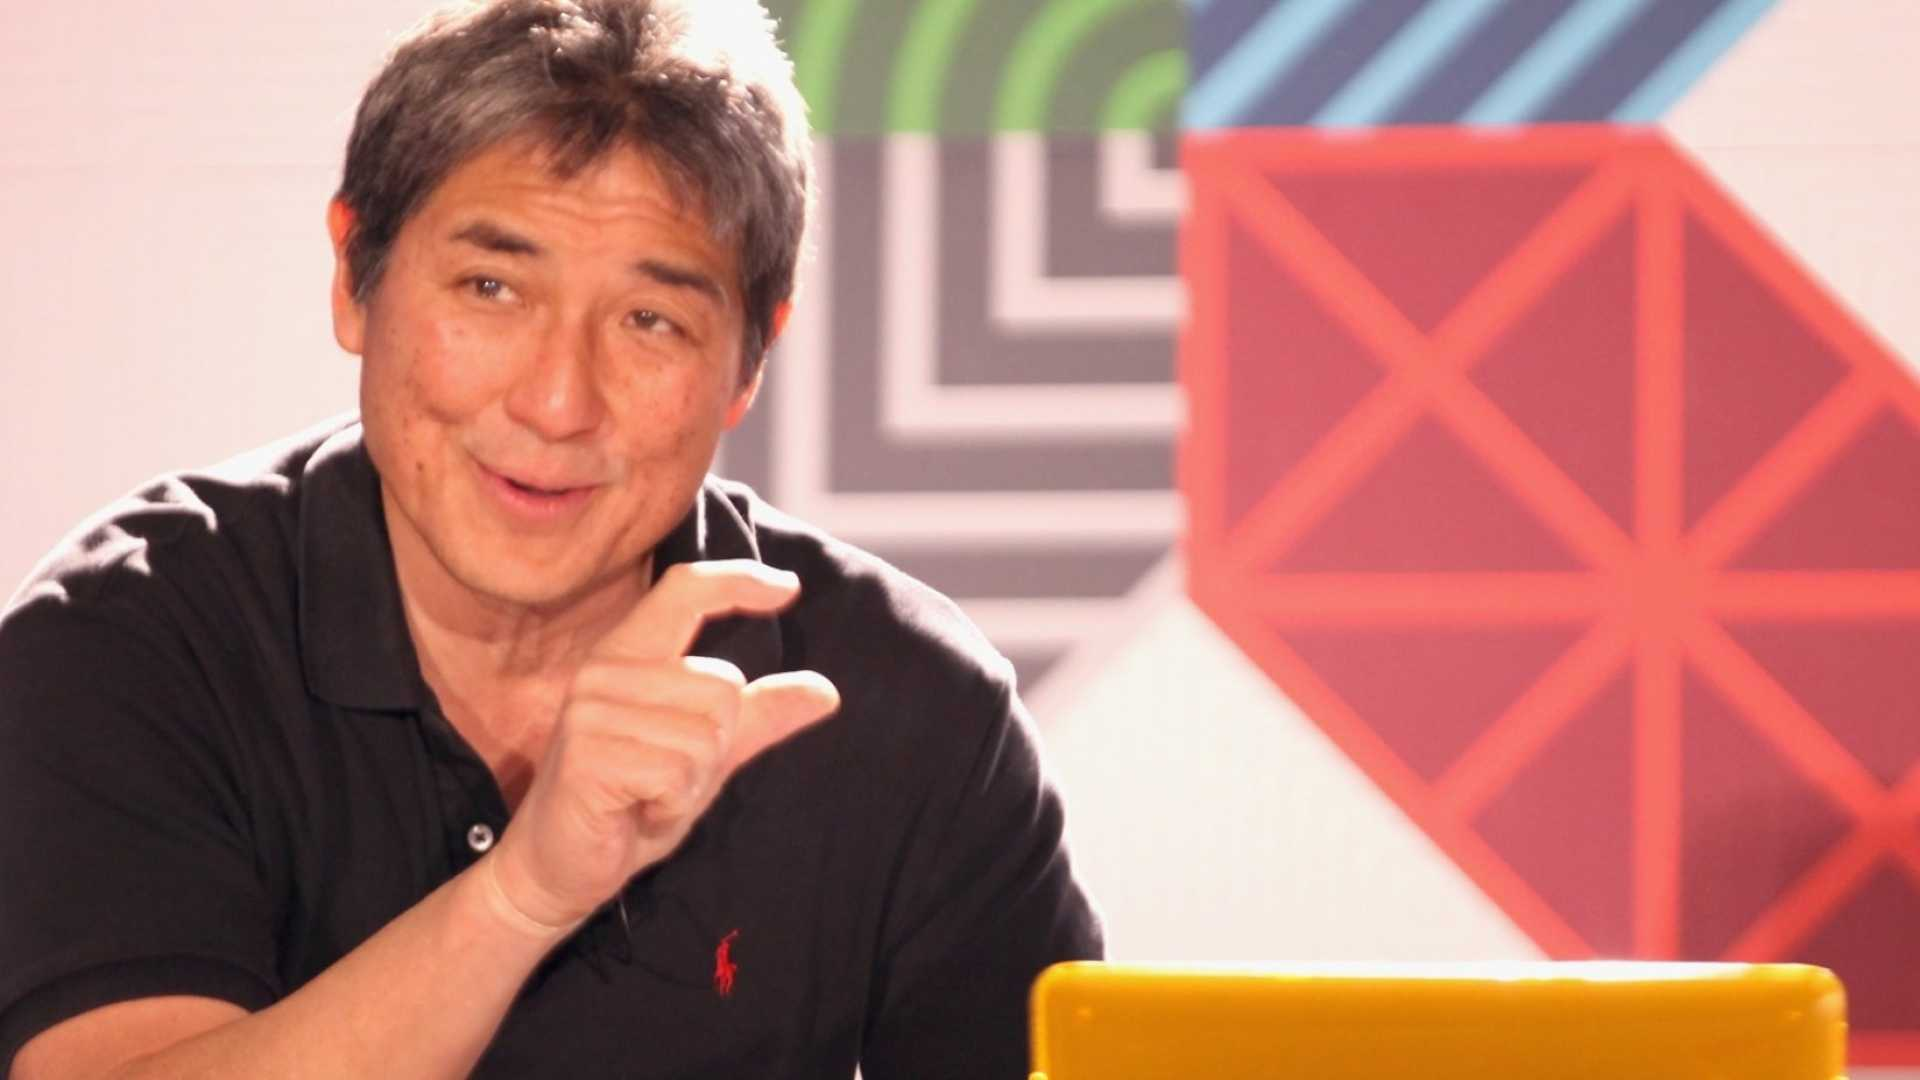 3 Crucial Lessons Guy Kawasaki Can Teach You About Being More Disruptive